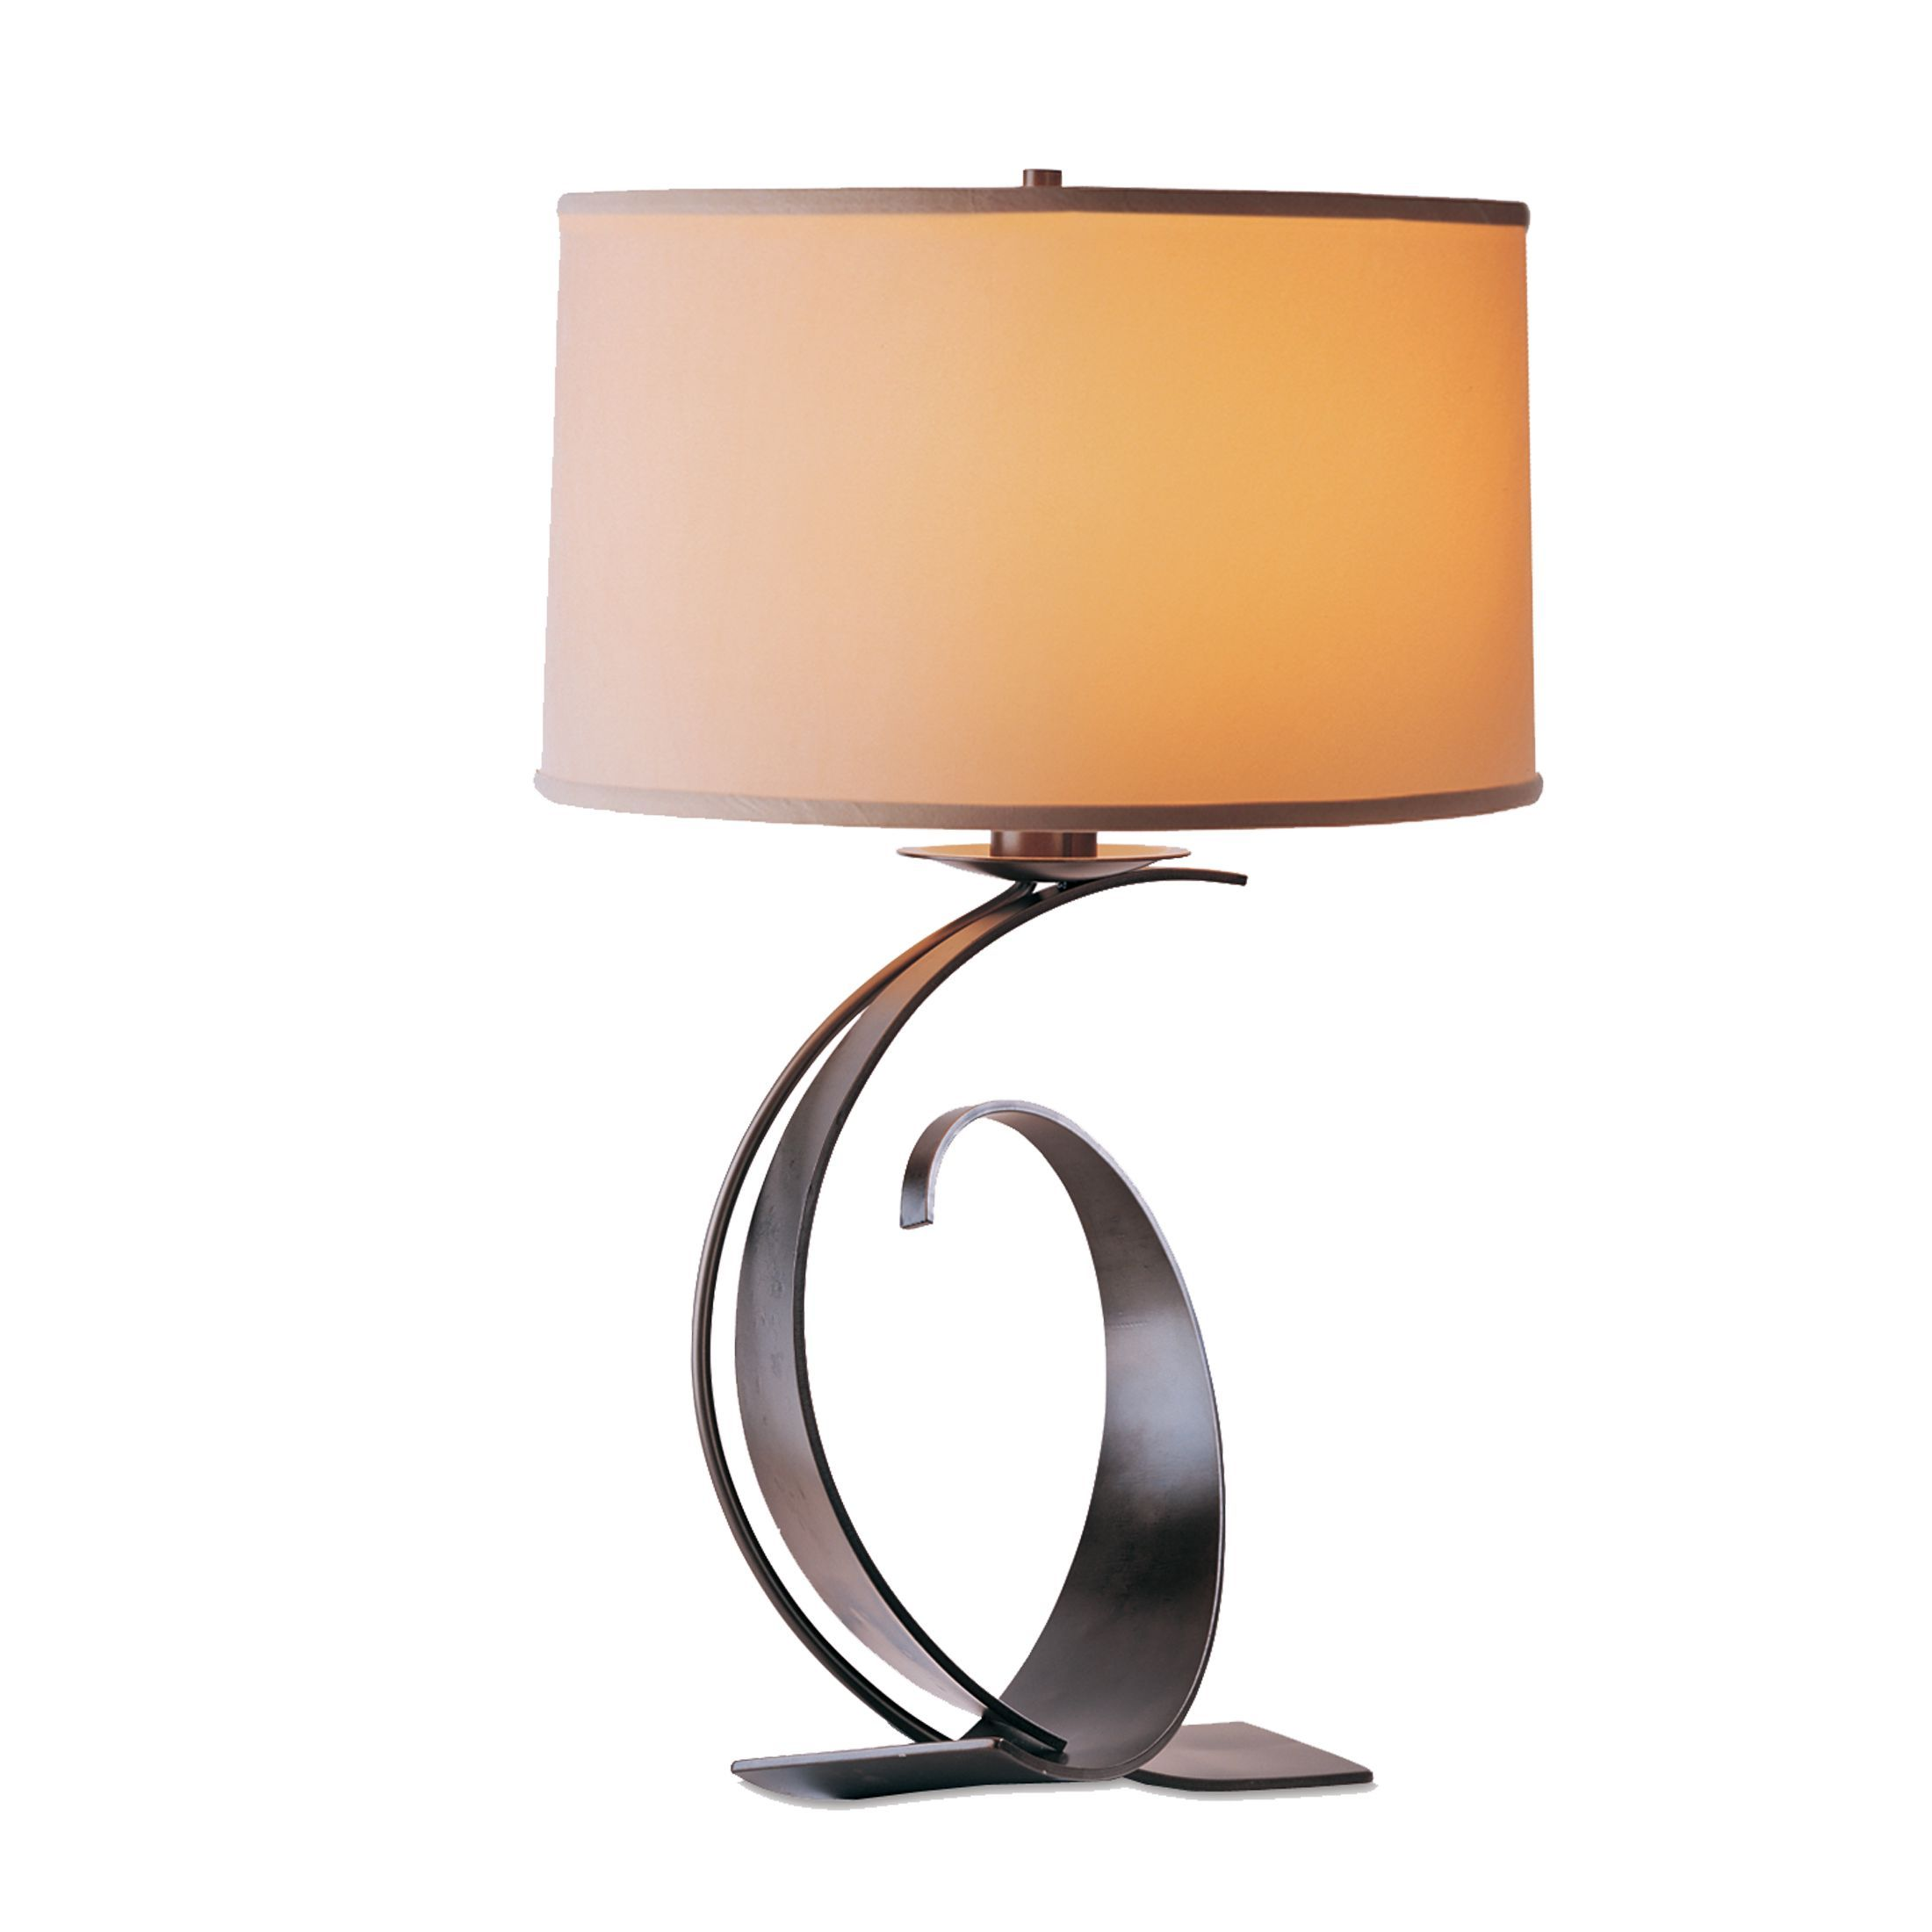 Thumbnail for fullered impressions large table lamp modern